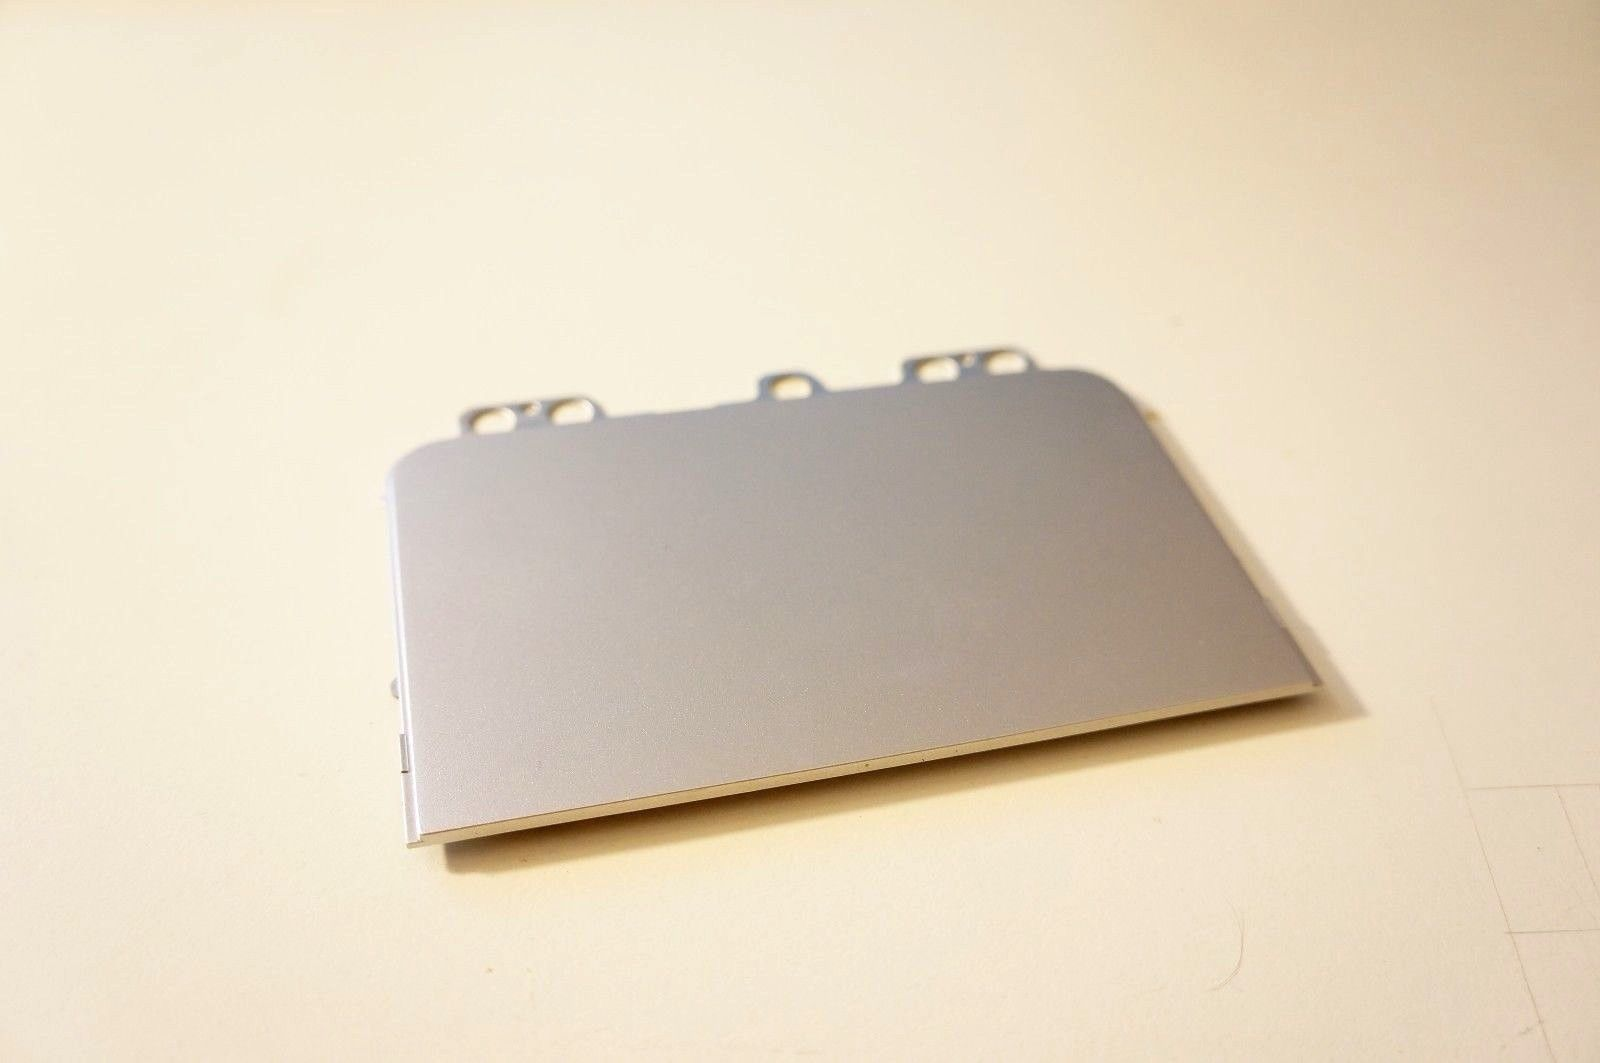 722972-001 HP Envy 15-J Series Touchpad Module 15-j009wm Mouse Pad Touch Pad